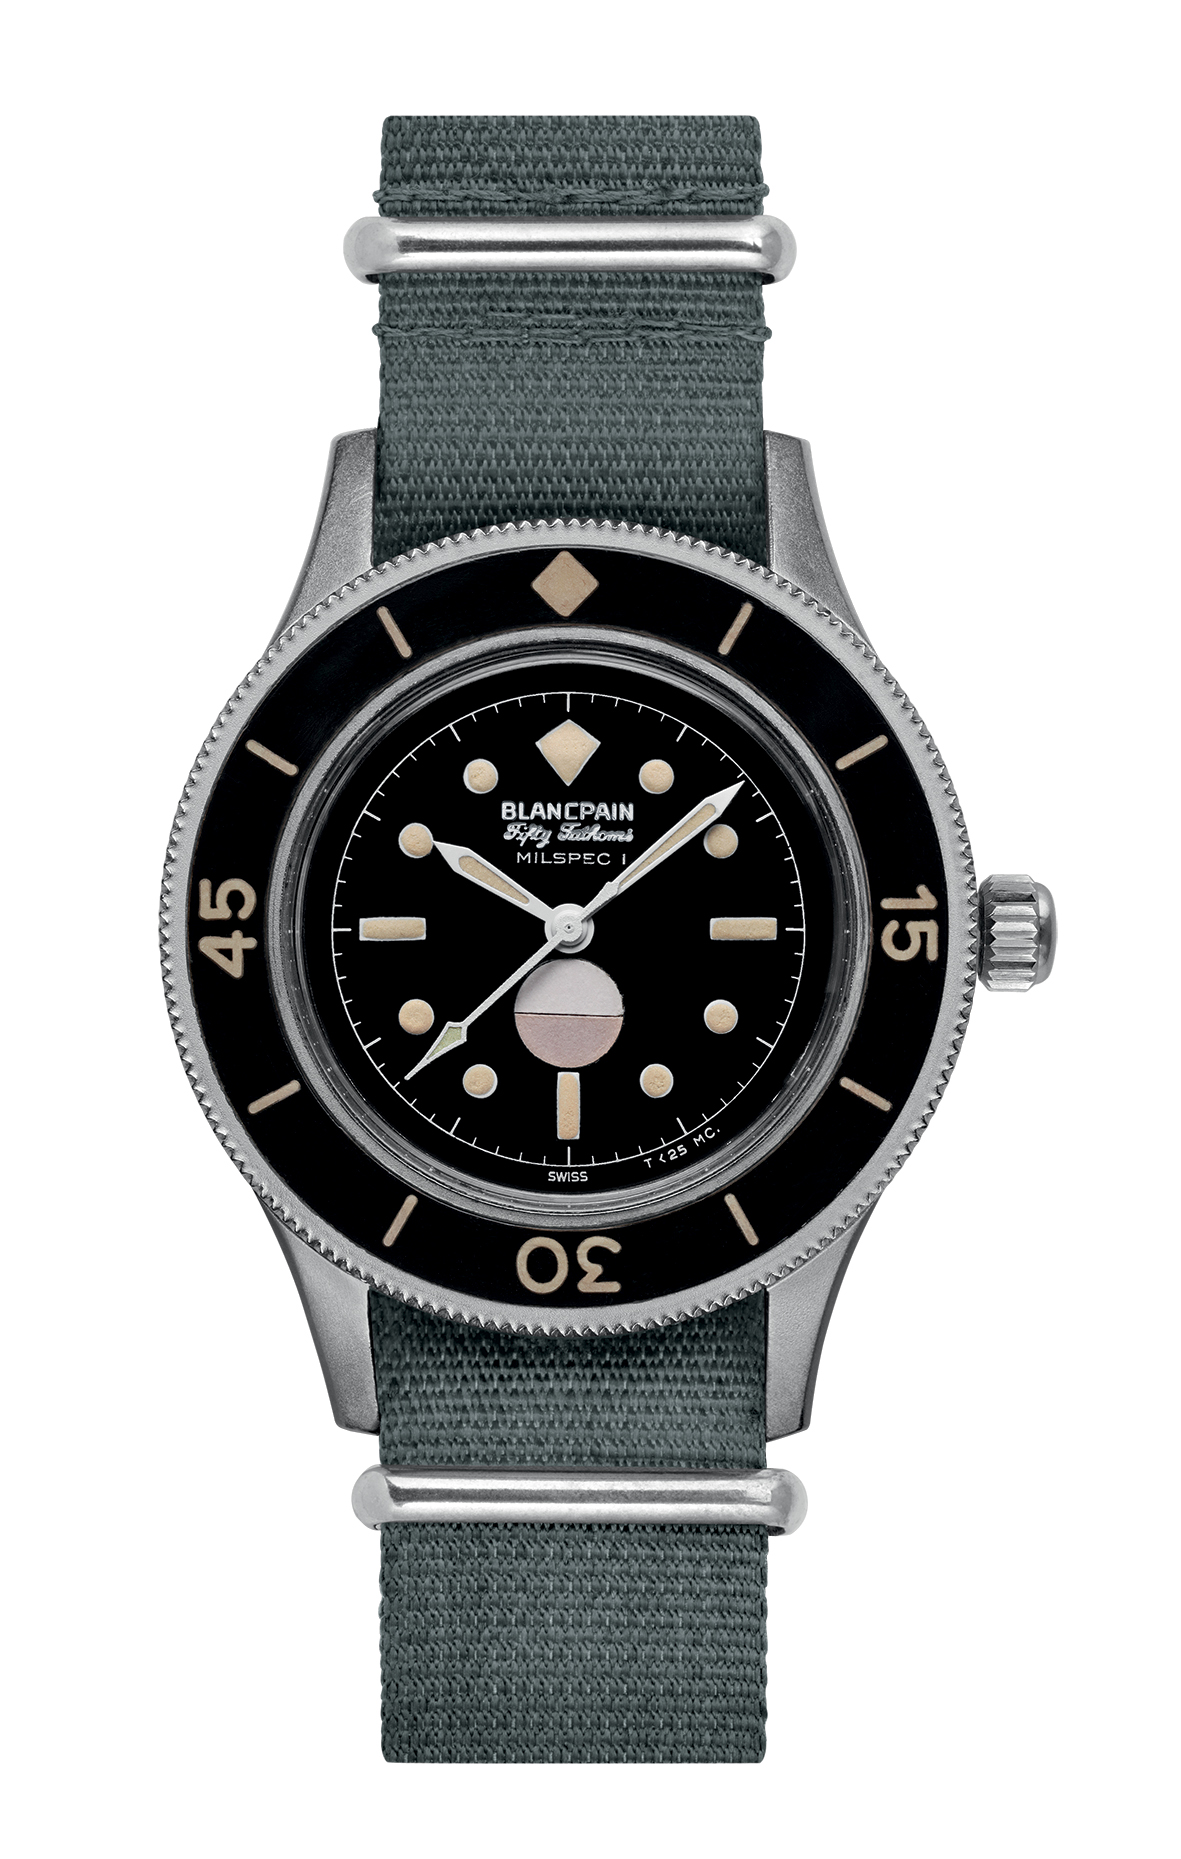 BLANCPAIN Fifty Fathom 1957